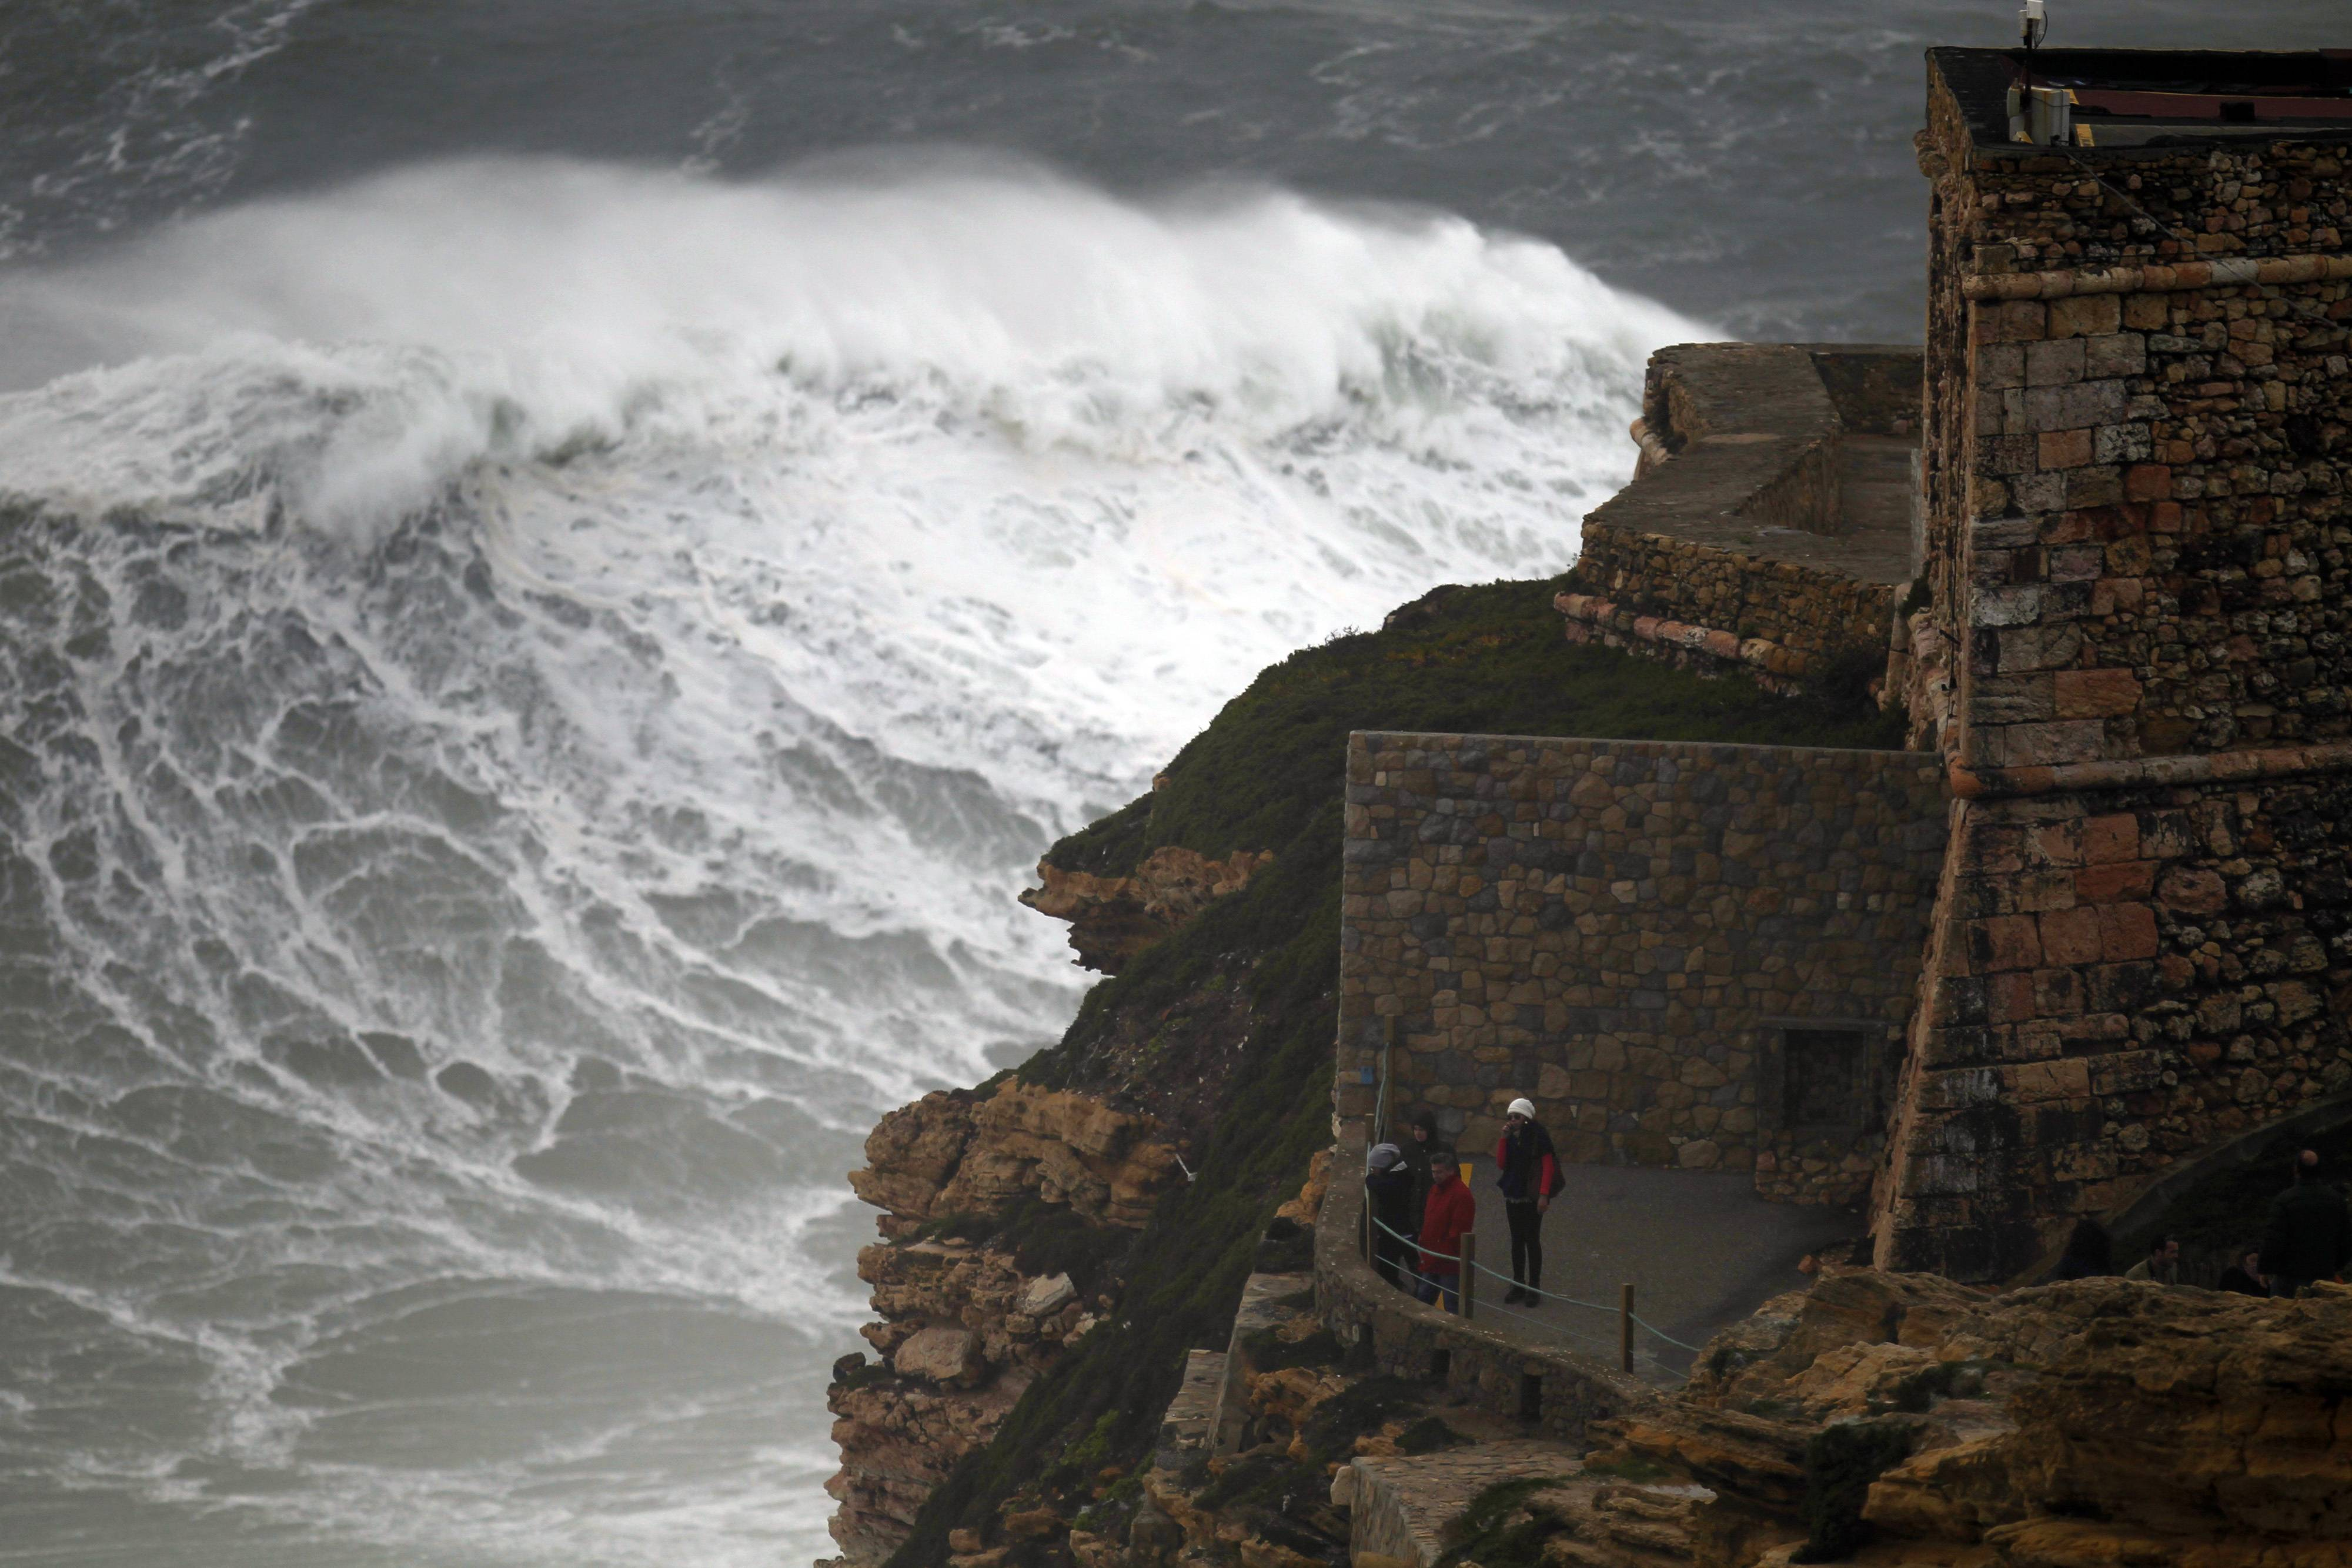 People watch huge waves breaking at the Nazare lighthouse, outside the fishing village of Nazare, on the central coast of Portugal, Saturday, Feb. 8, 2014. The Portuguese weather institute posted a red alert along the central and north coast of Portugal, the highest level of the country's four-alert scale, and few ports were closed due to the rough sea.